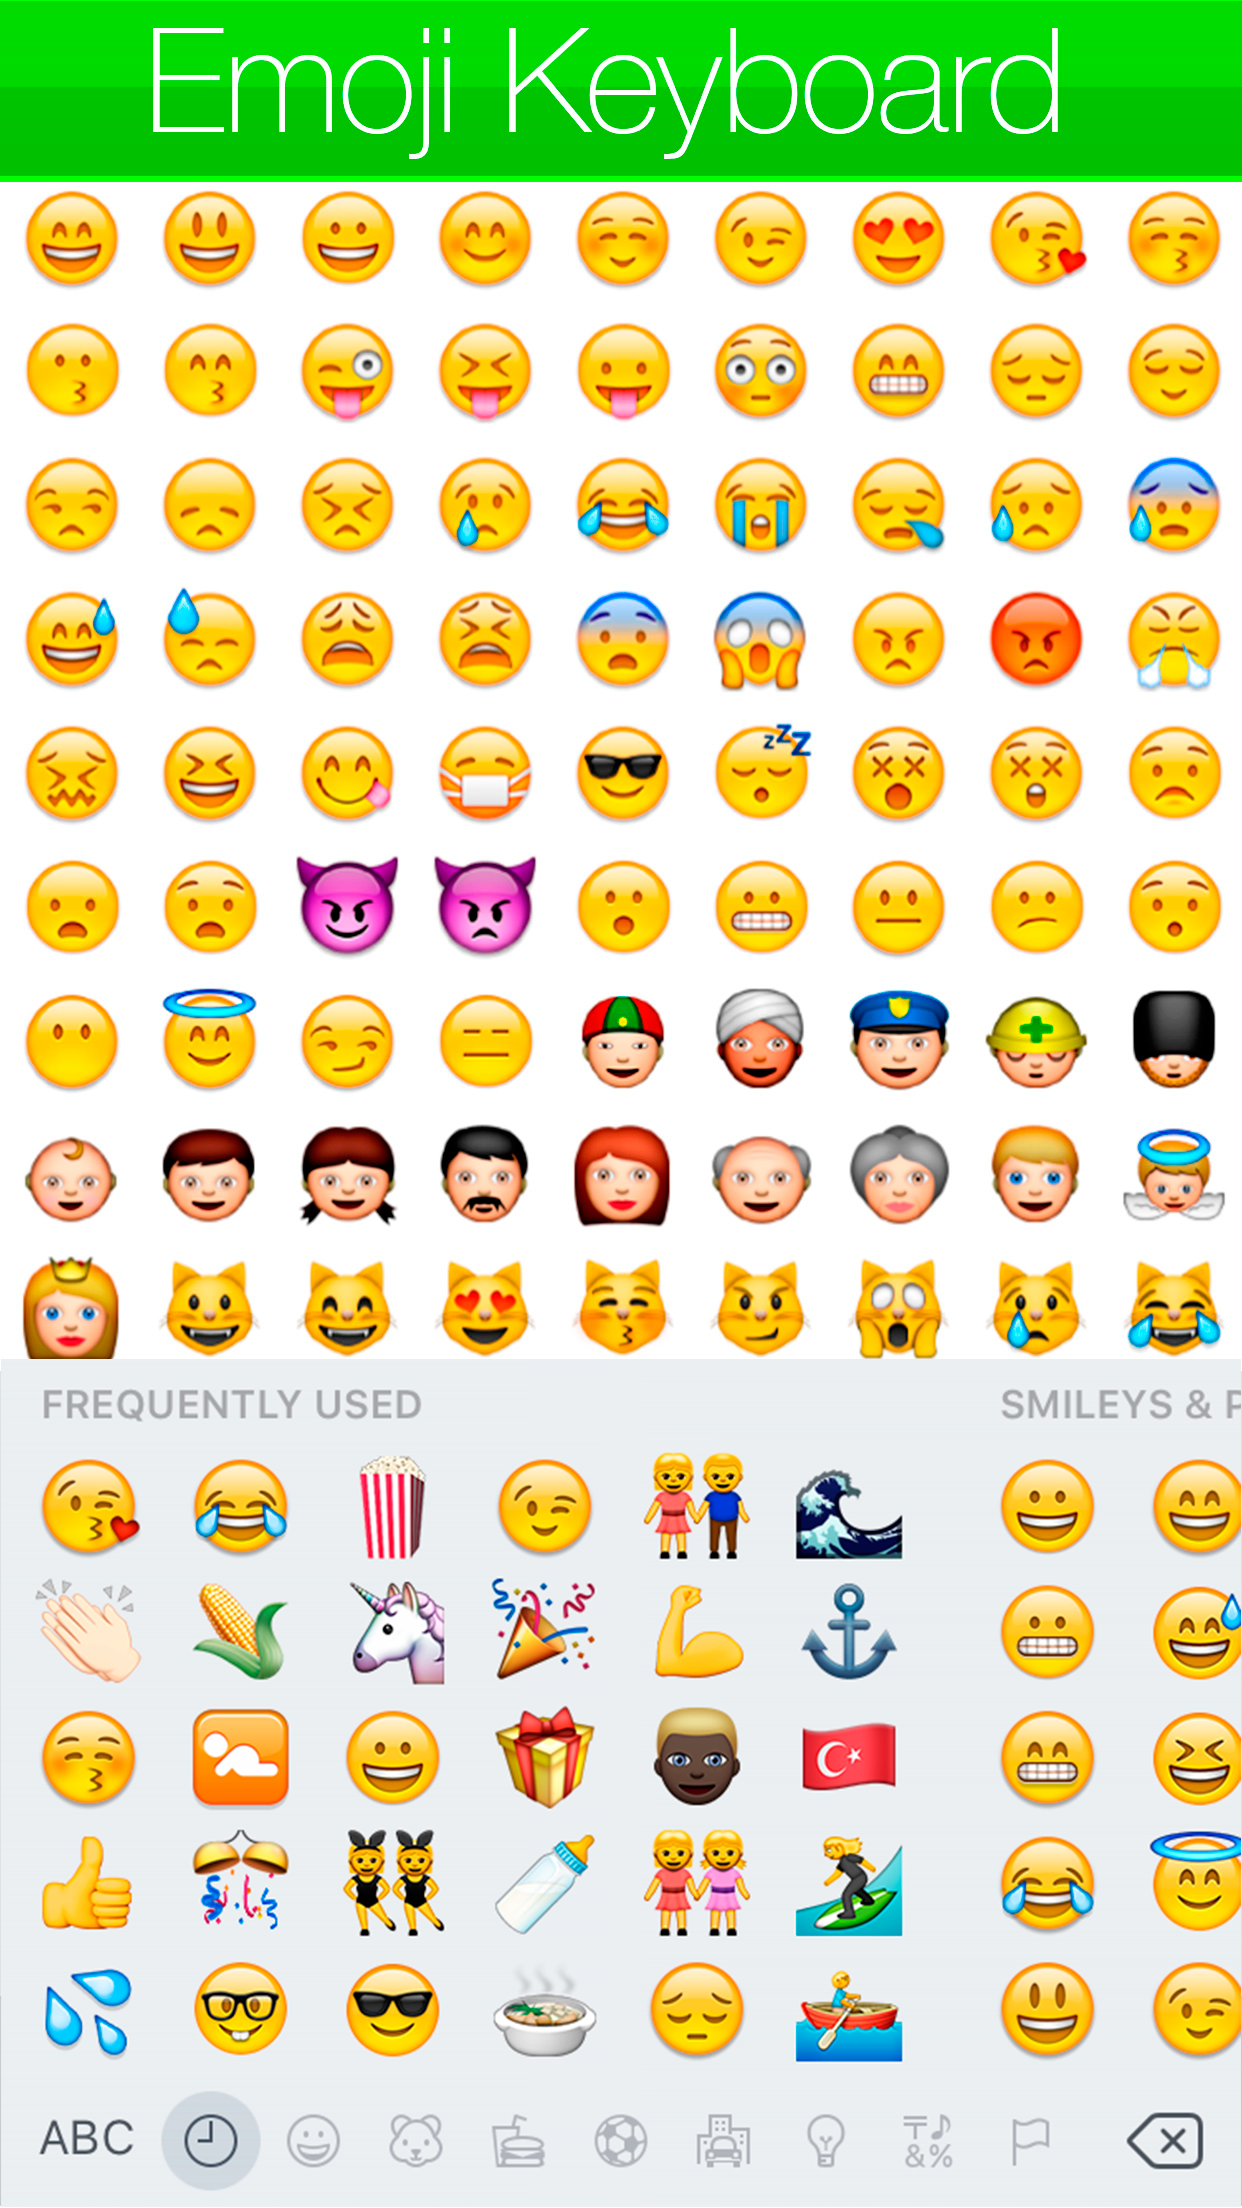 Emoji - Keyboard Screenshot